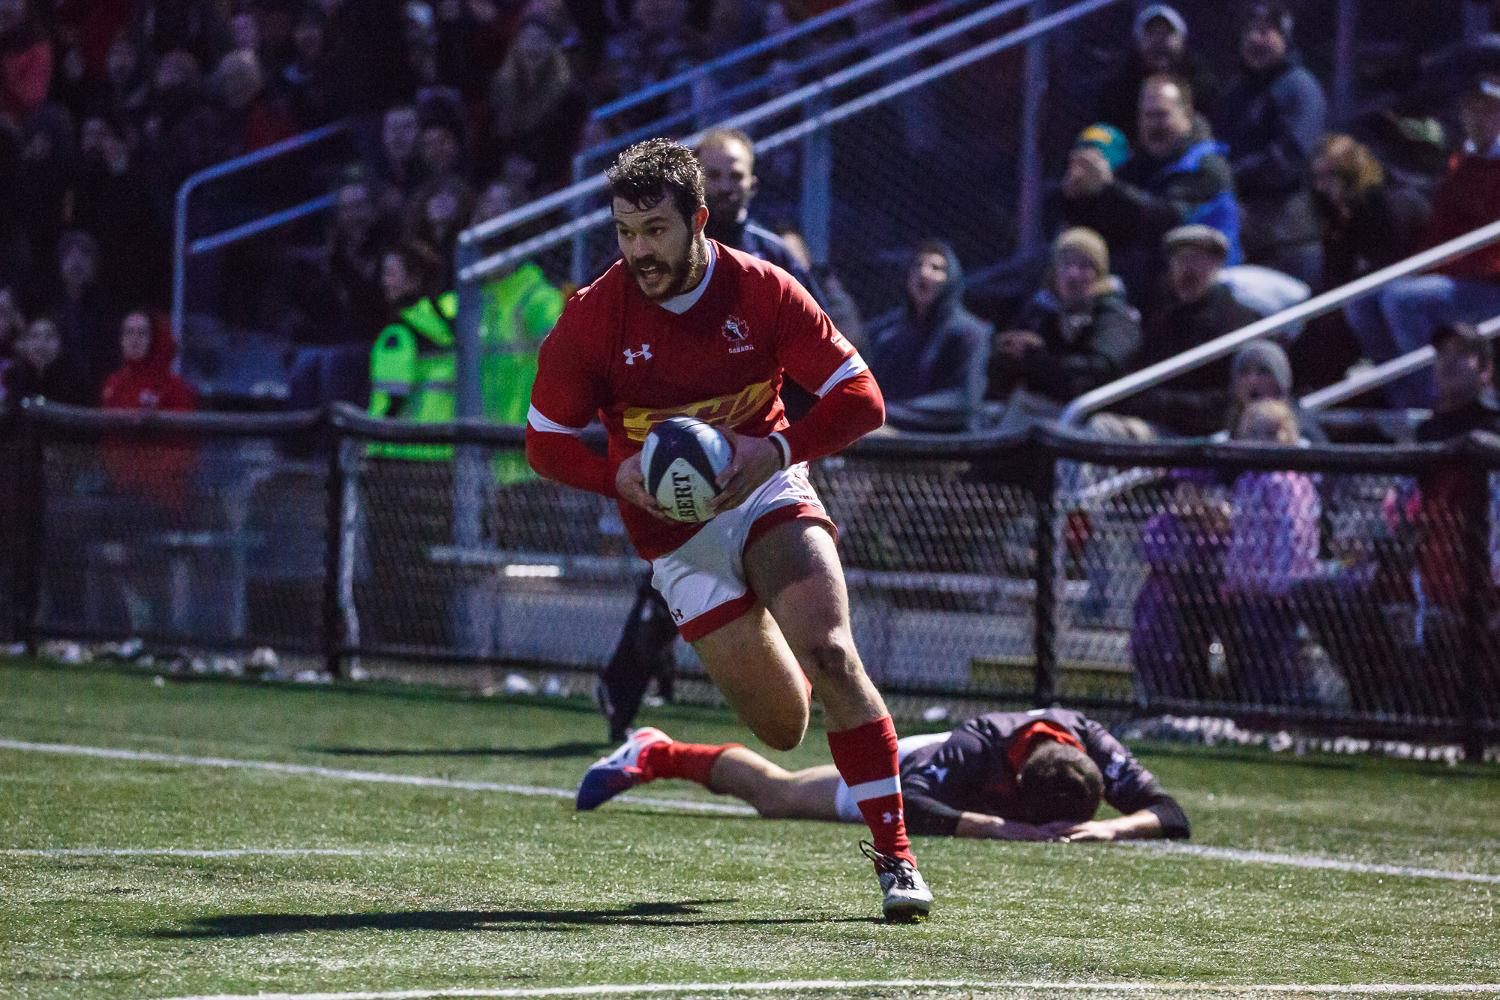 Americas Rugby Championship 2017: Canada v Chile